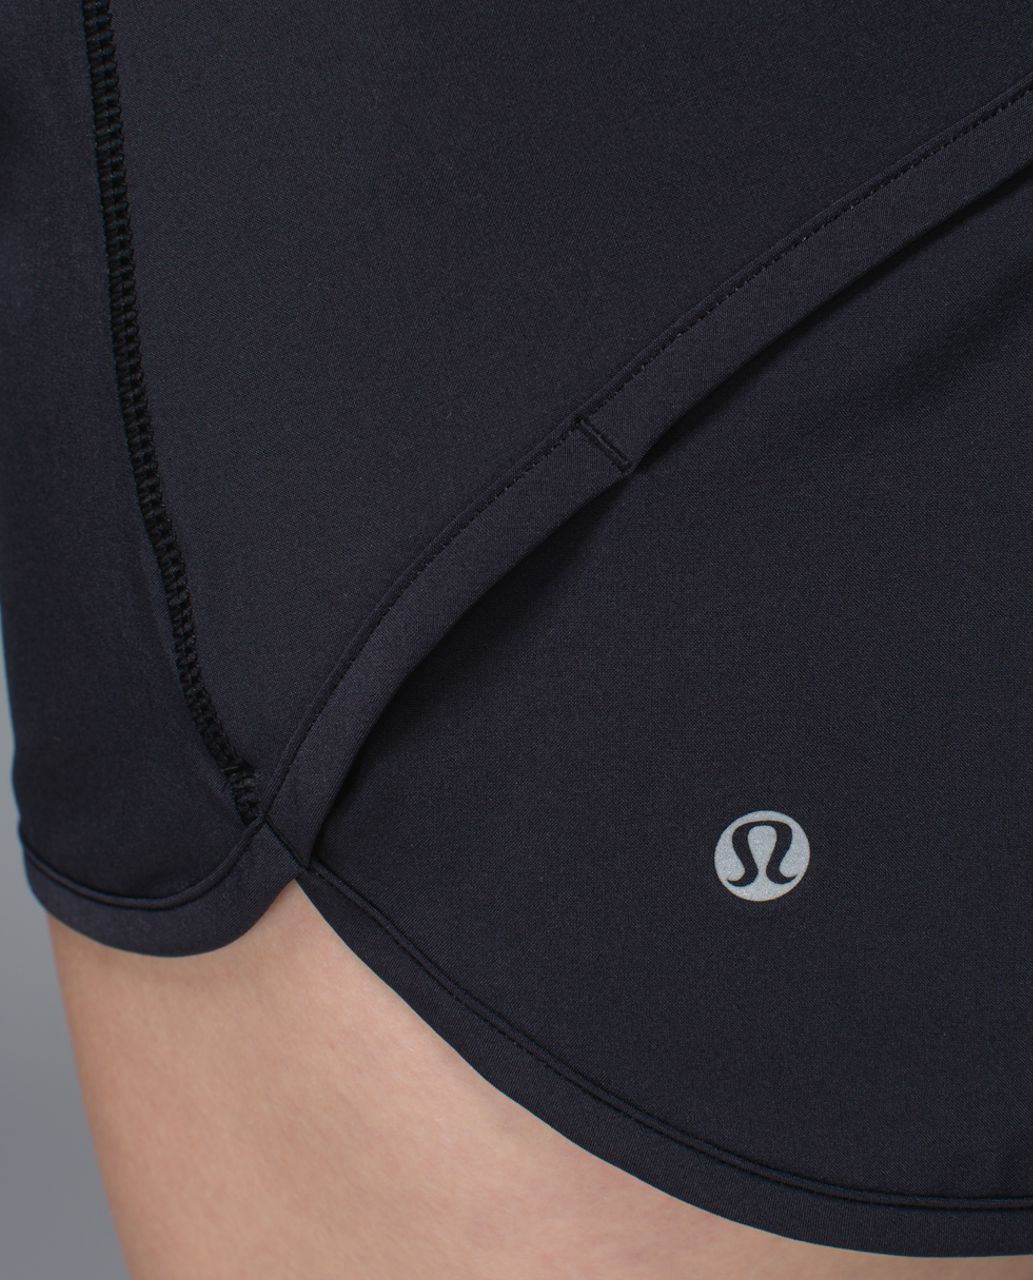 Lululemon Run:  Speed Short *4-way Stretch - Black / Su14 Quilt 31